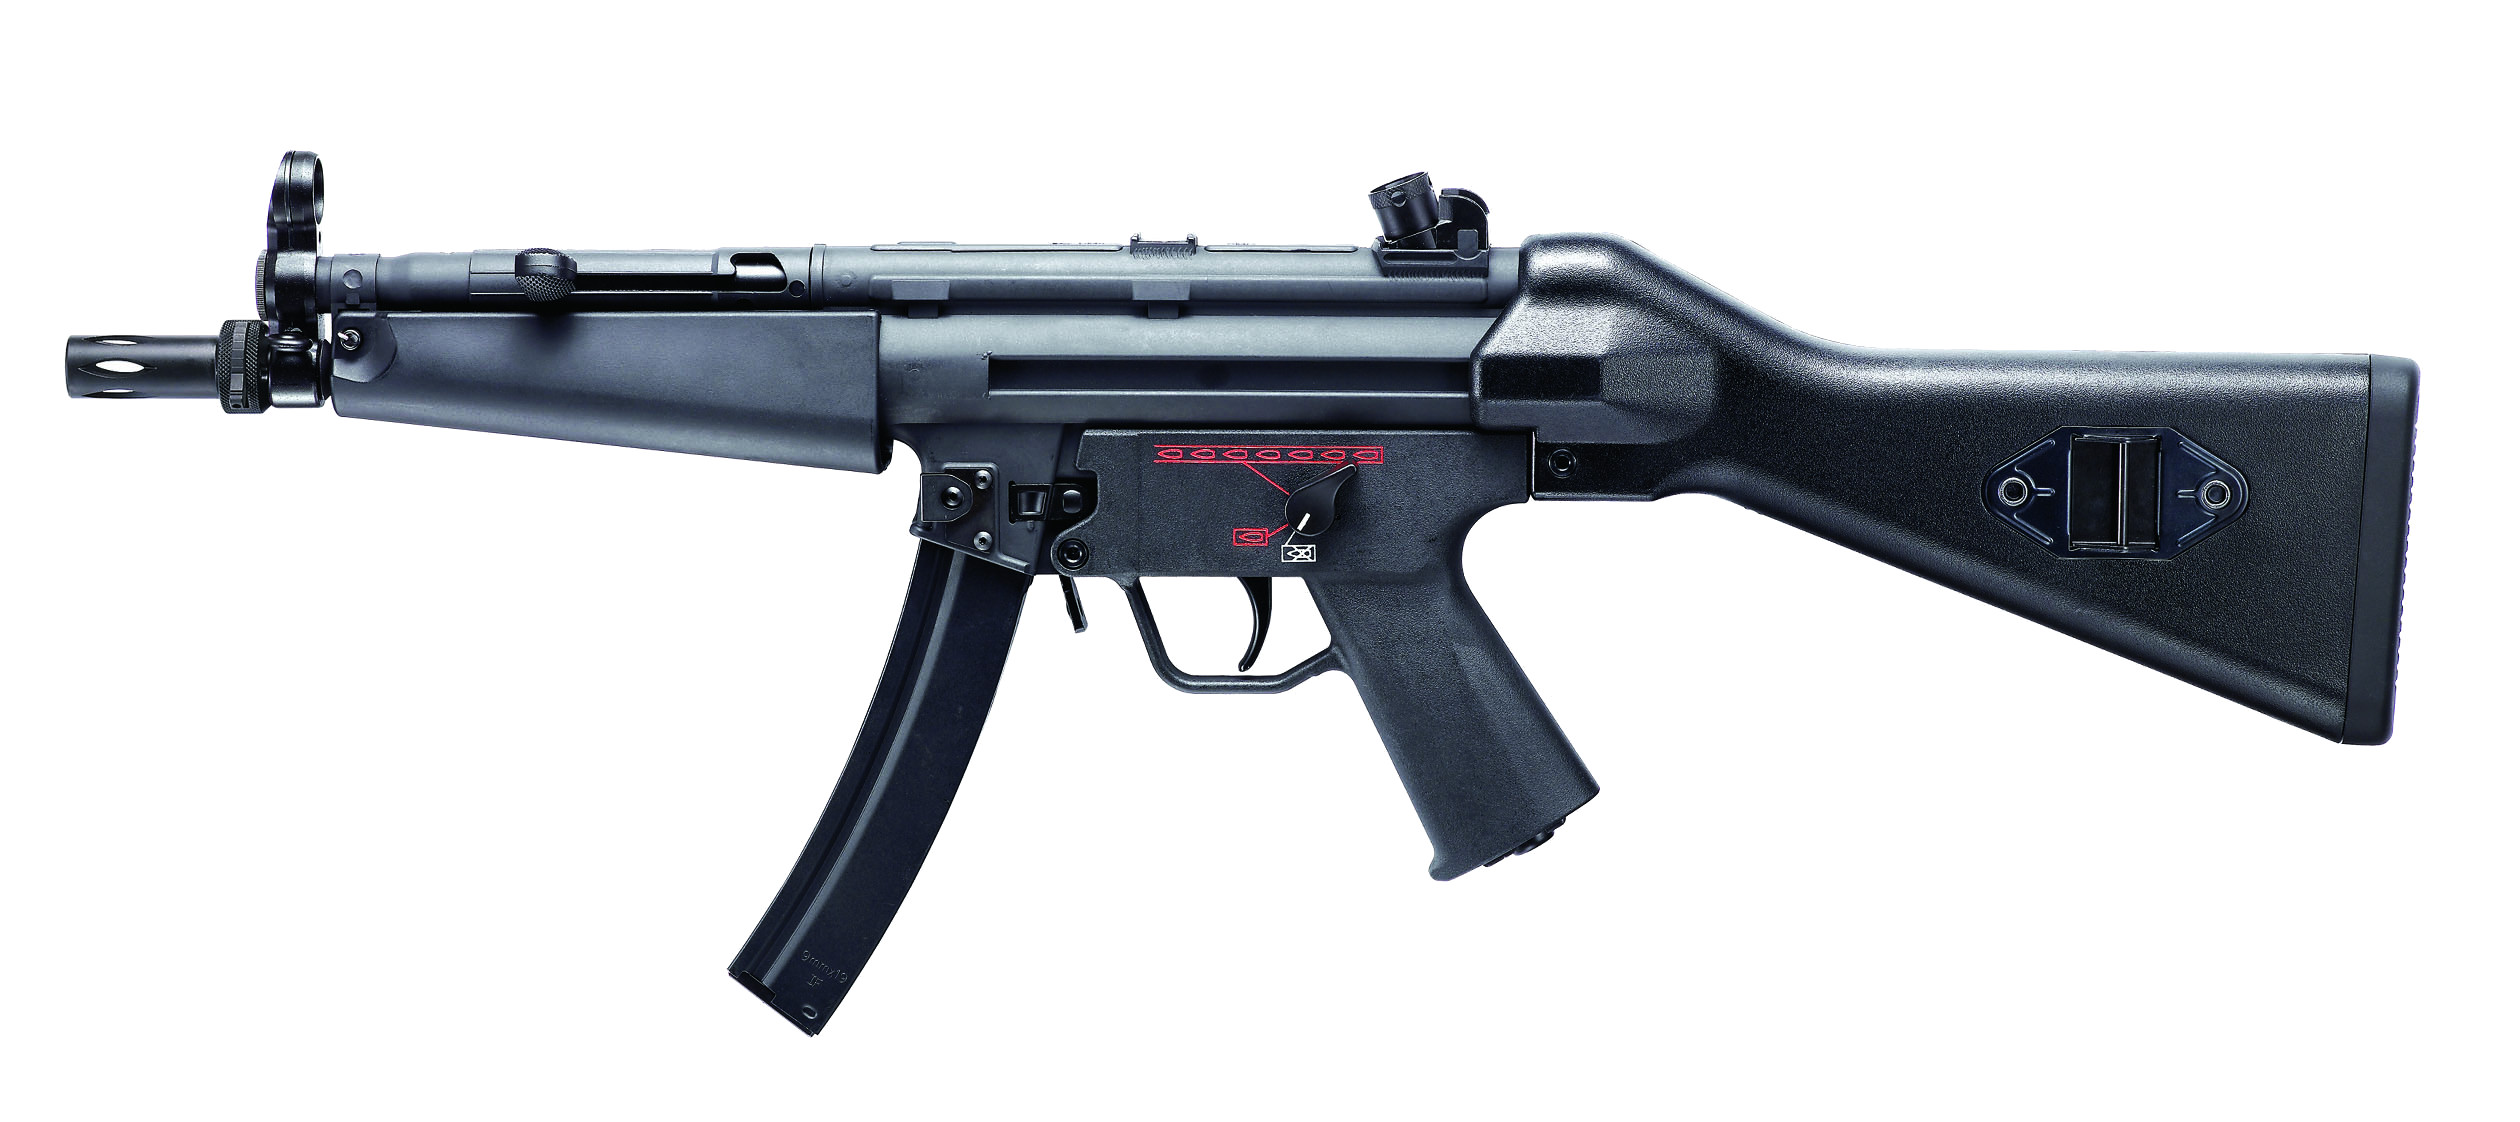 MP5 EGM A4 STD G&G BLOWBACK AEG SEMI ET FULL AUTO 1.2 JOULE SANS BAT NI CHARG